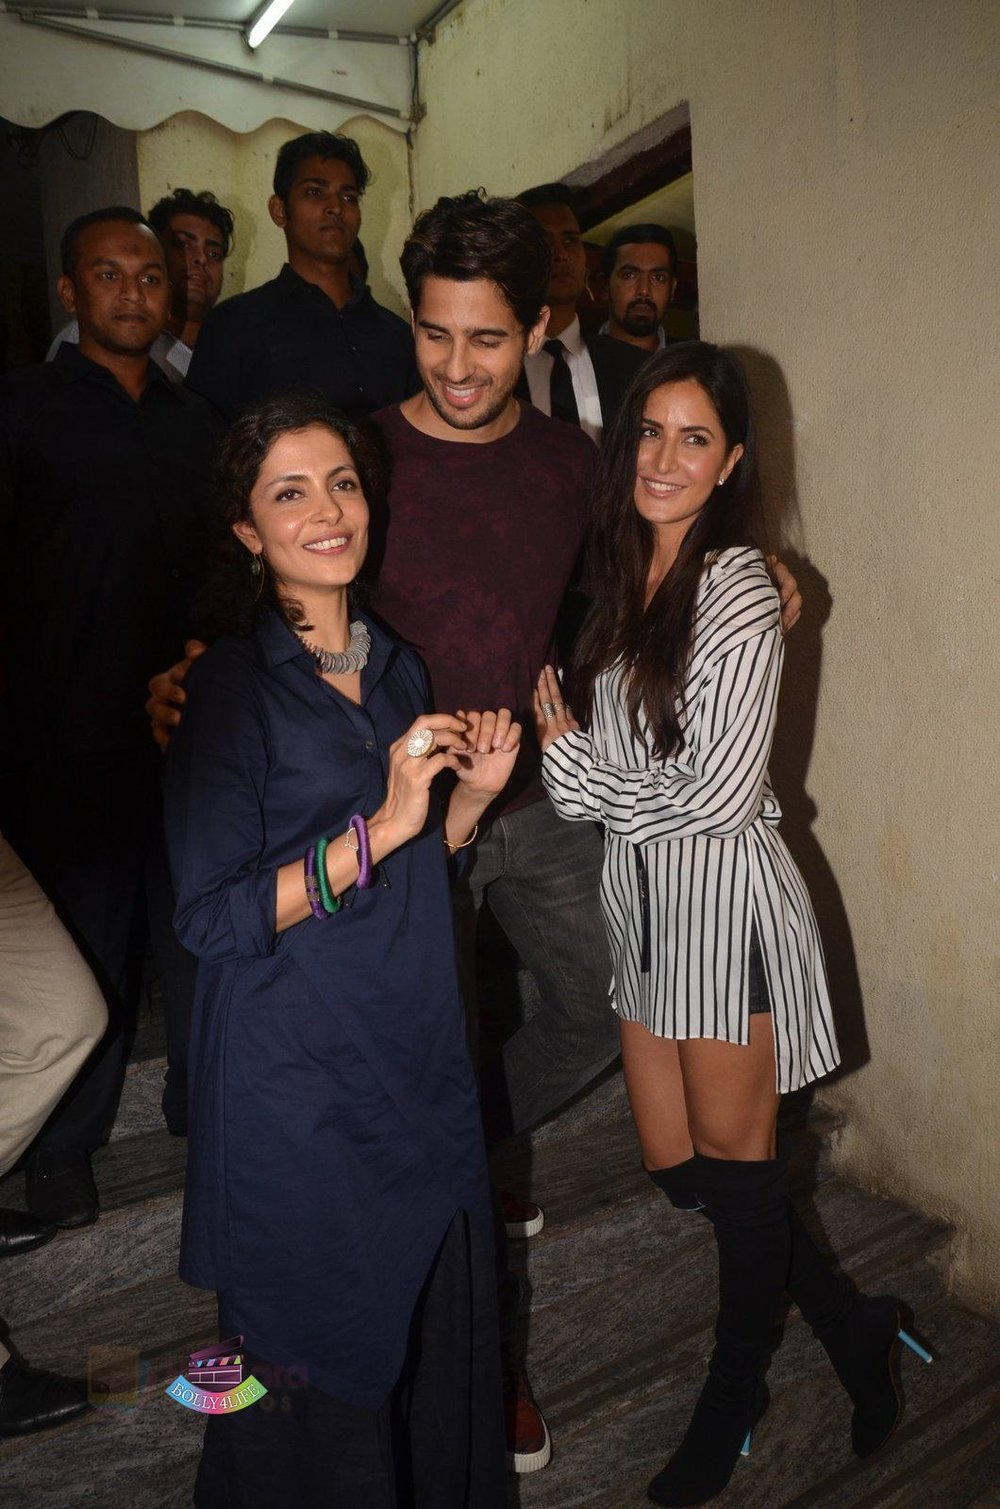 Sidharth-Malhotra-Katrina-Kaif-at-Baar-Baar-Dekho-Screening-on-8th-Sept-2016-118.jpg